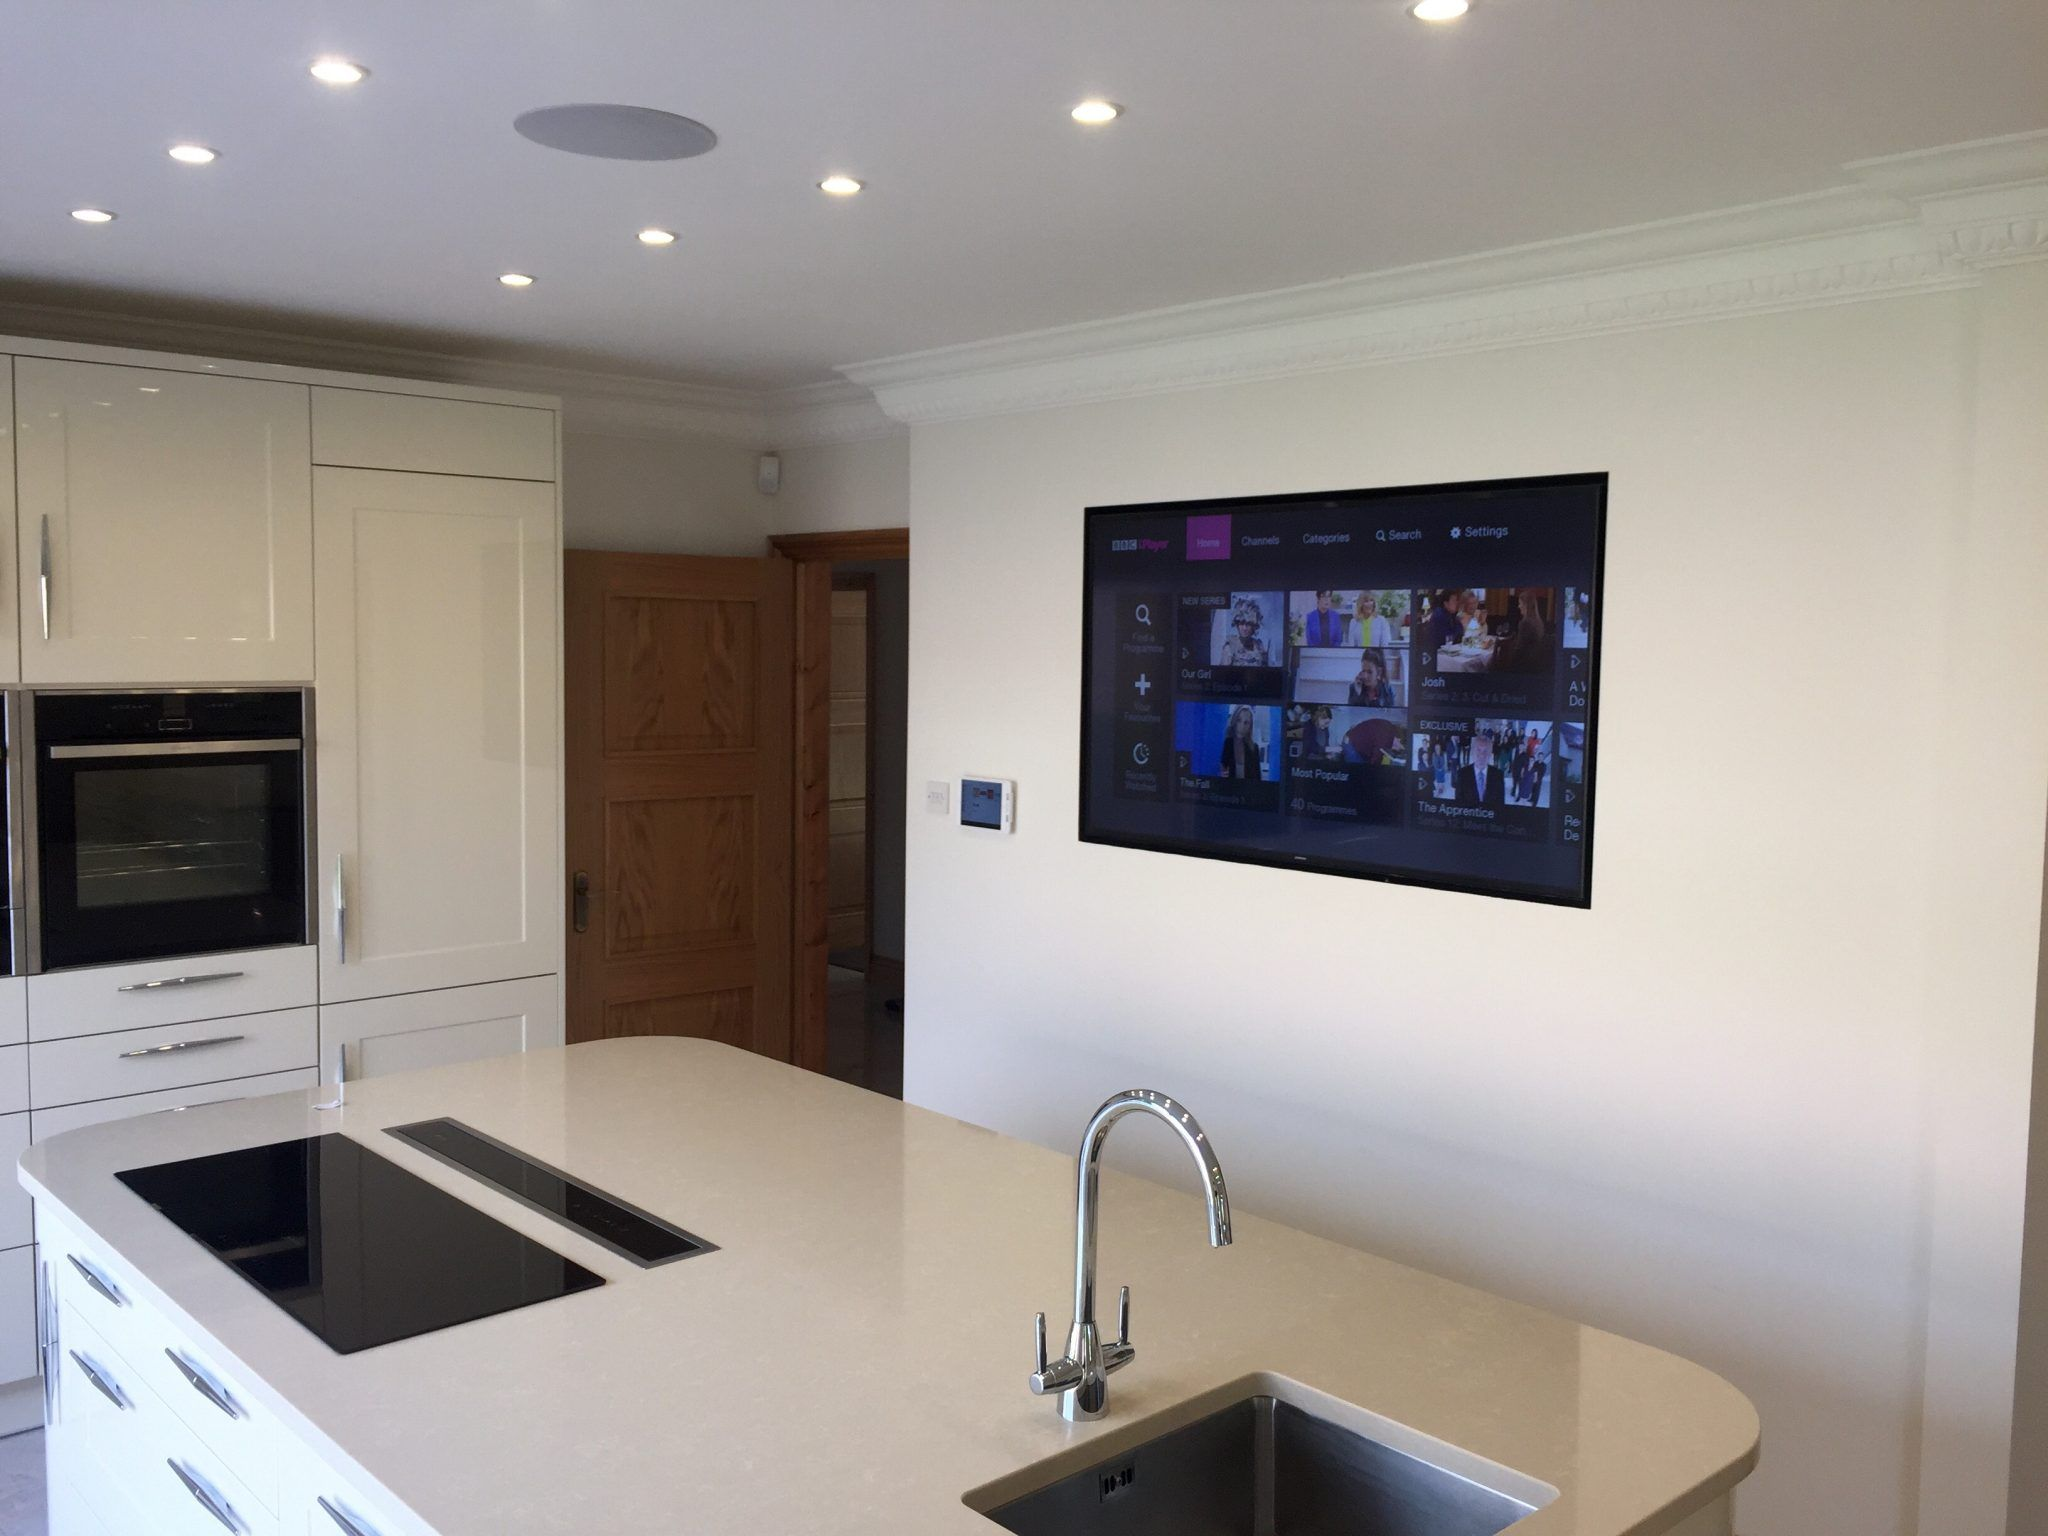 Wall Mounted TV in Kitchen | Tv in kitchen, Wall mounted ...